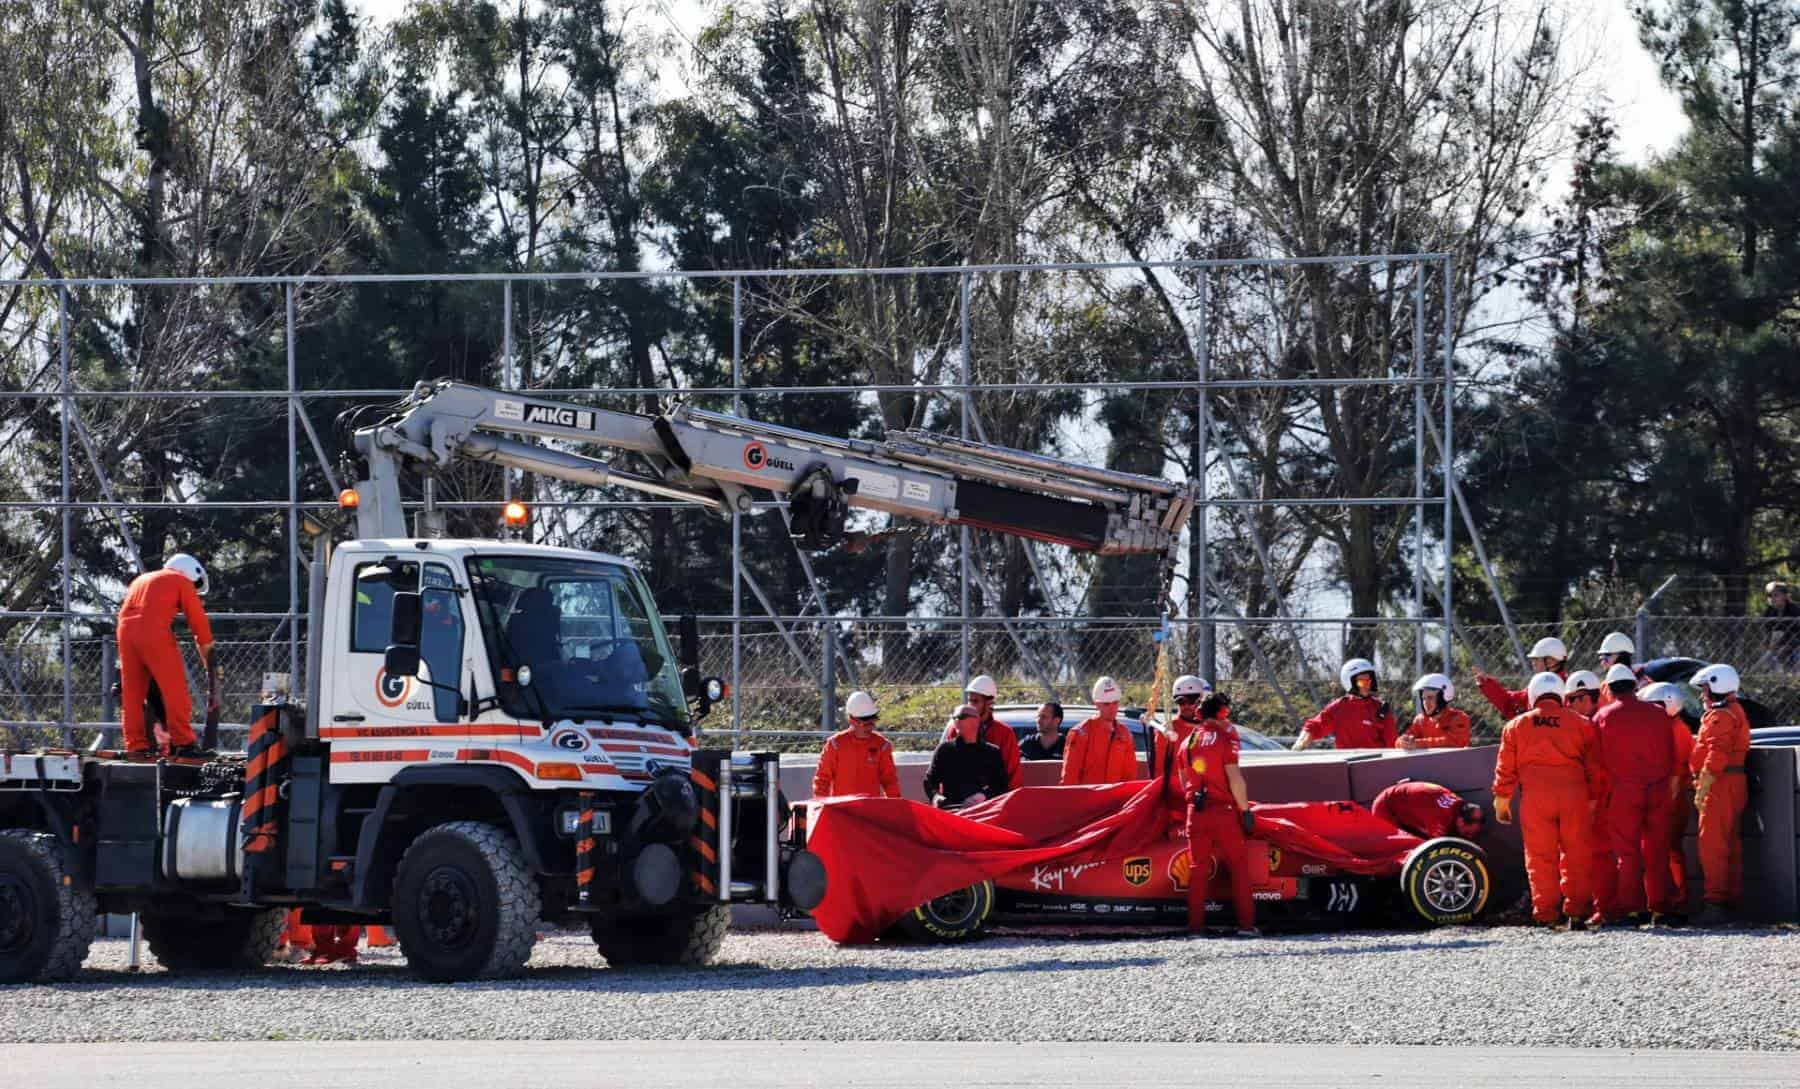 Sebastian Vettel Ferrari SF90 crash F1 2019 Barcelona Test 2 Day 2 Photo Ferrari